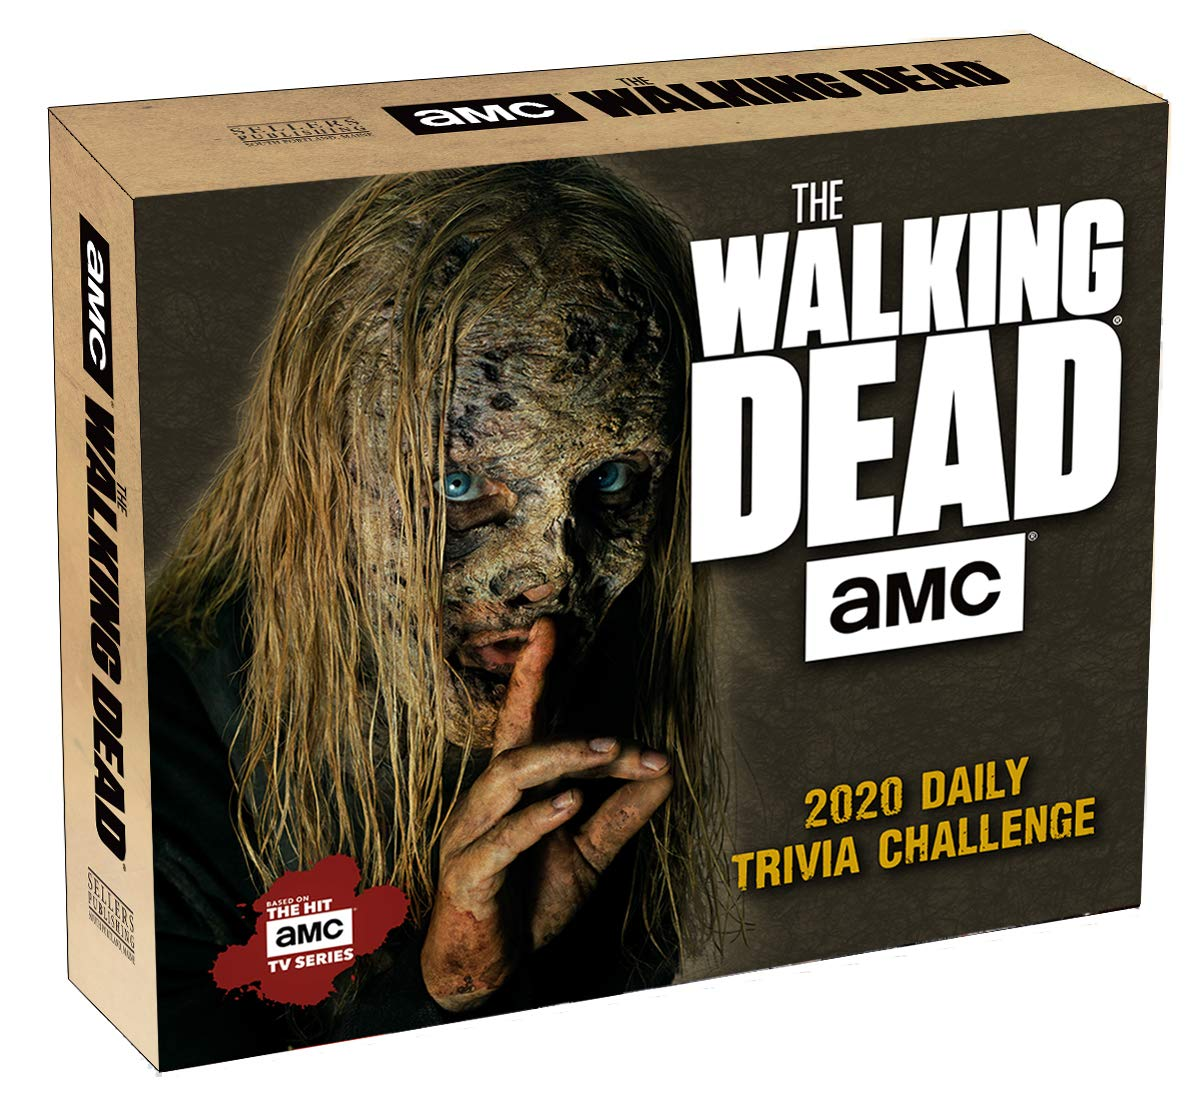 AMC The Walking Dead Daily Trivia Challenge 2020 Boxed Daily Calendar by SELLERS PUBLISHING, INC.